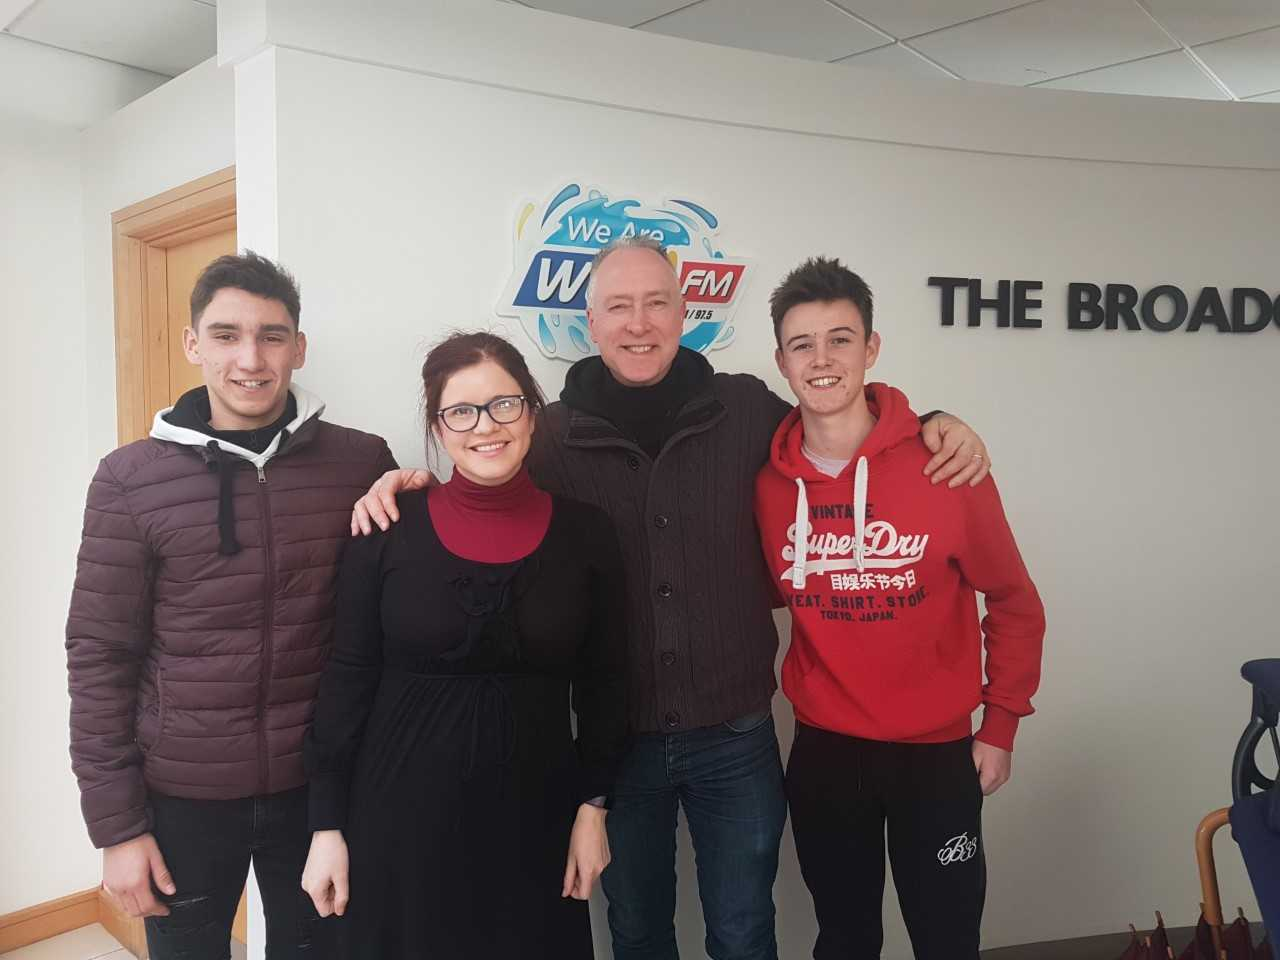 Listen: Students at Ardscoil na Mara tell Ollie and Mary about the miniature F1 car they're making